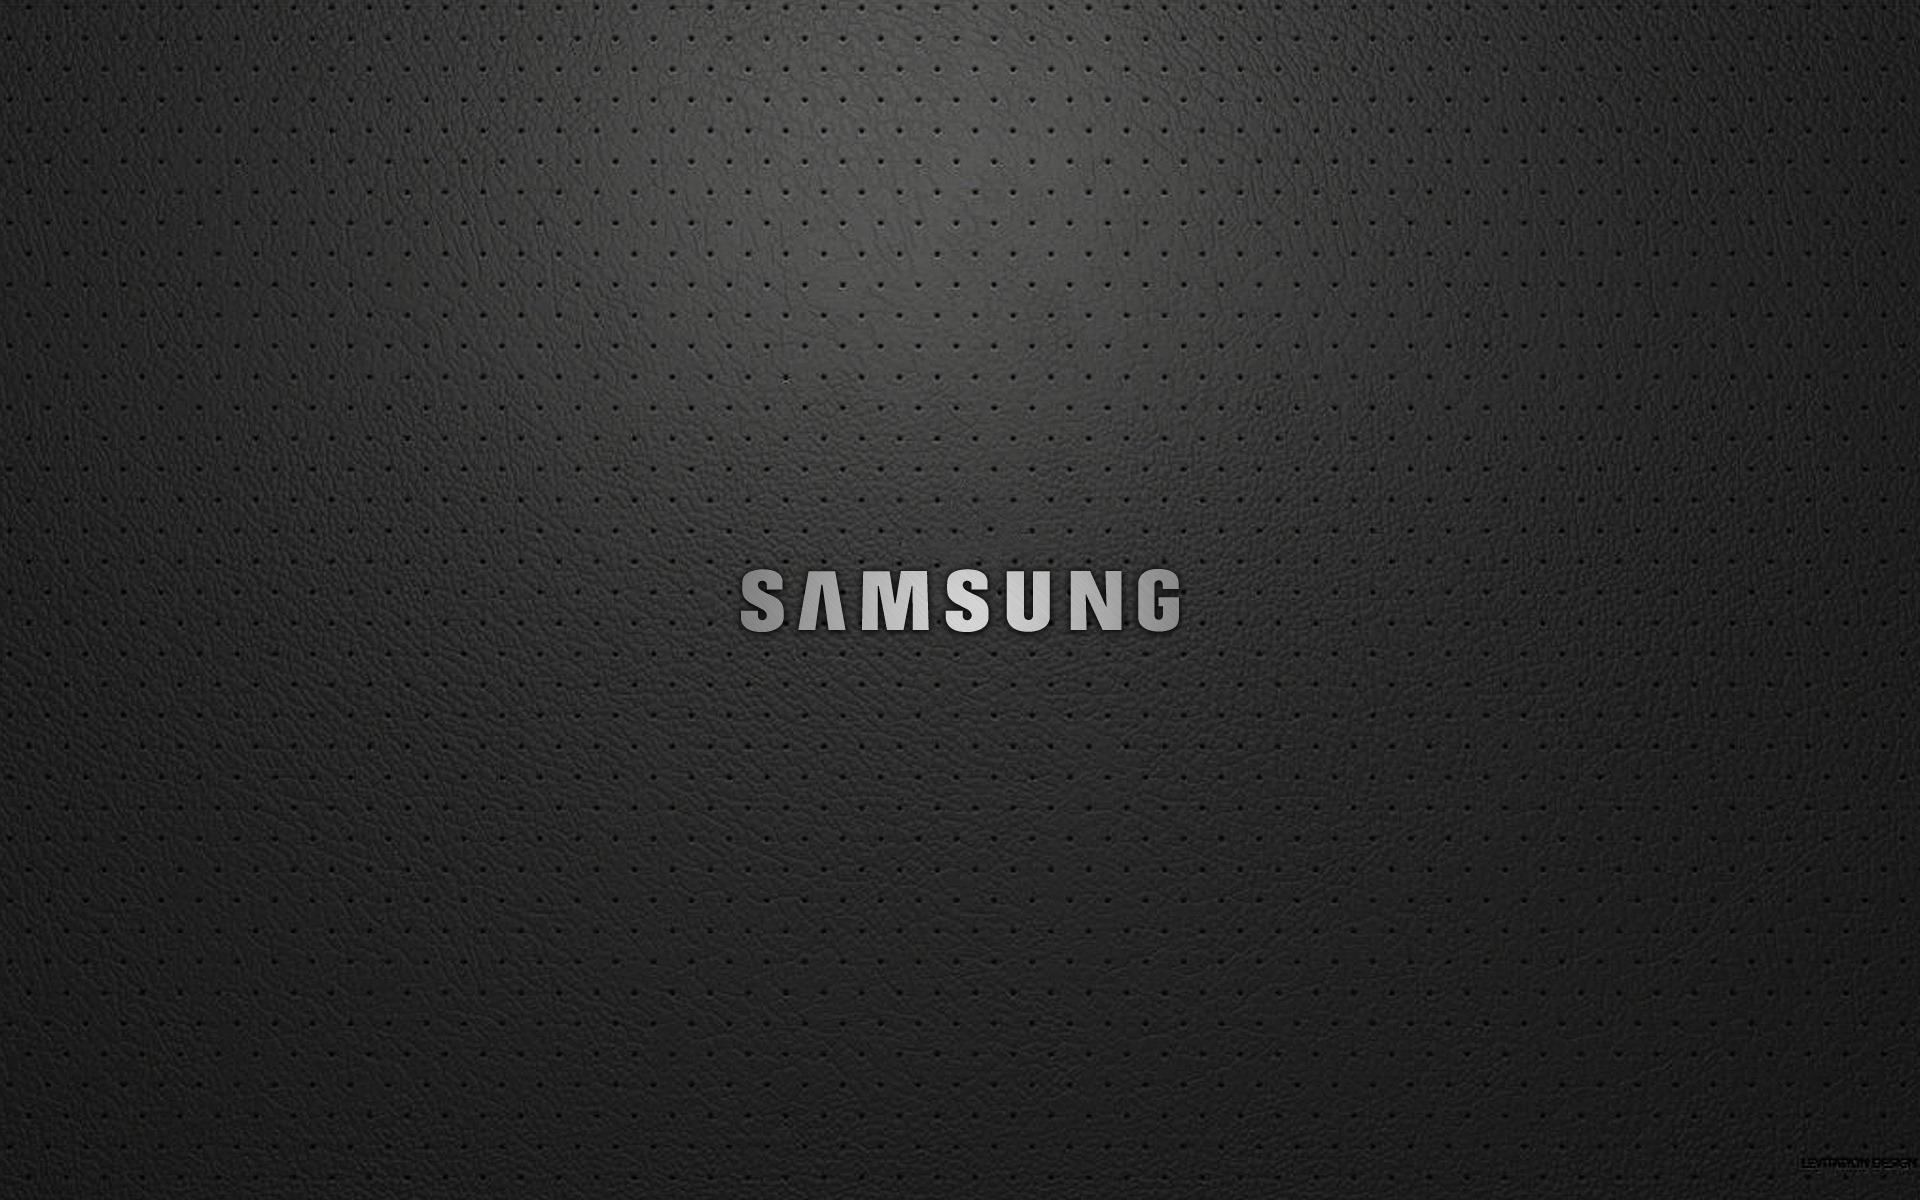 HD Samsung Wallpapers For Free Download 1920x1200